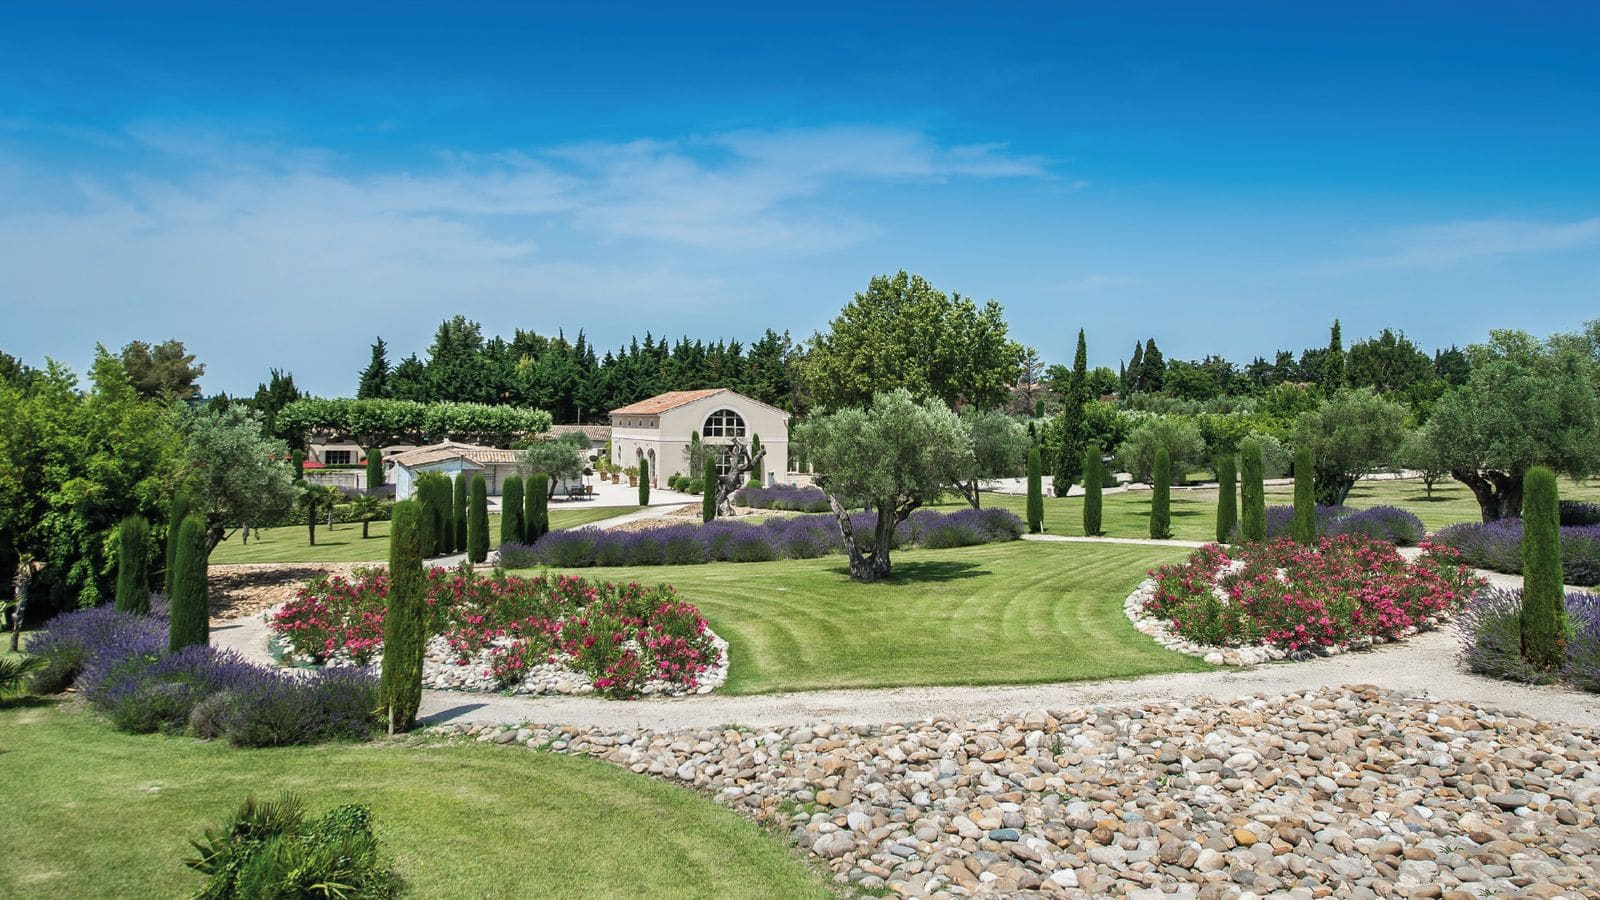 HOLIDAY RENTAL, LUXURY VILLA OR PROPERTY IN FRANCE